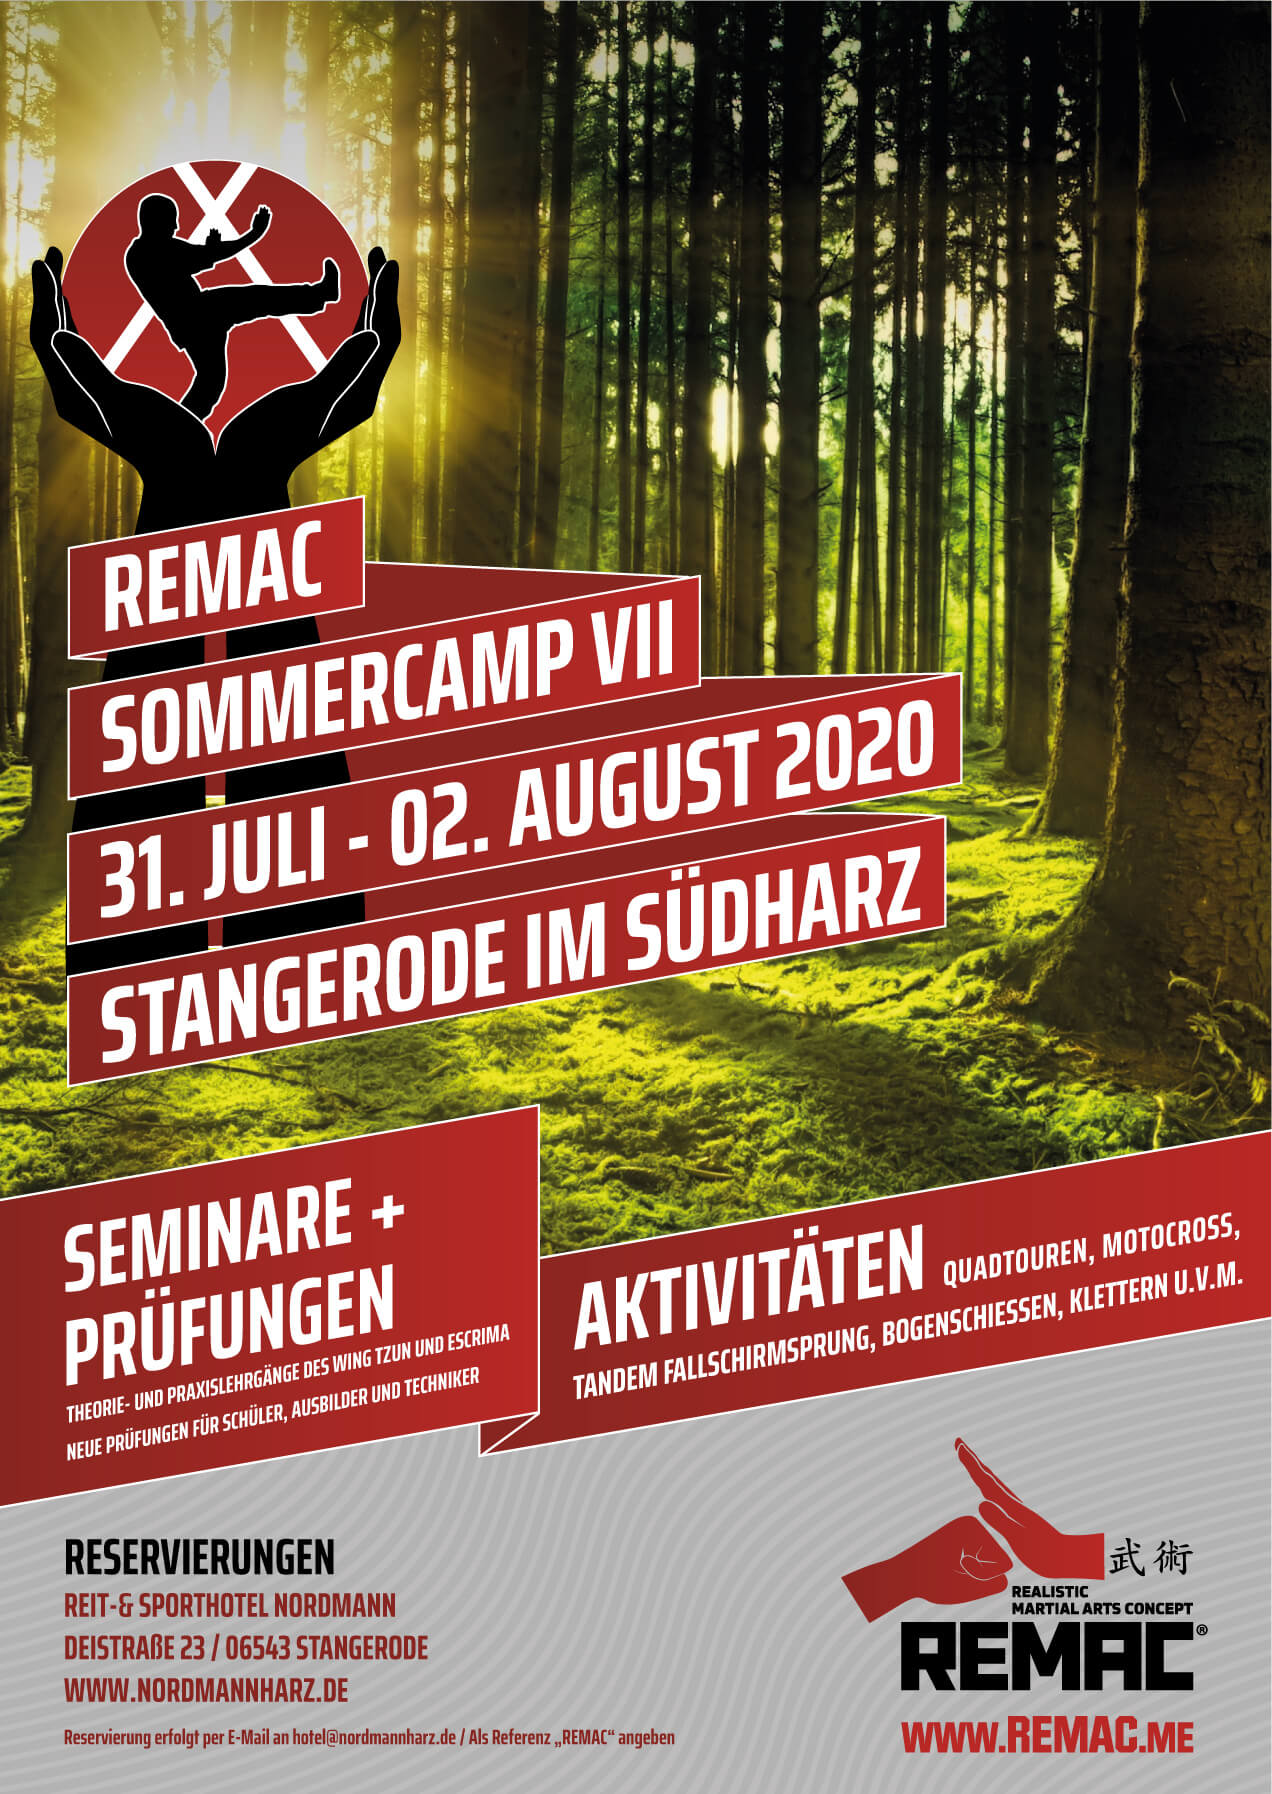 REMAC Sommercamp 2020